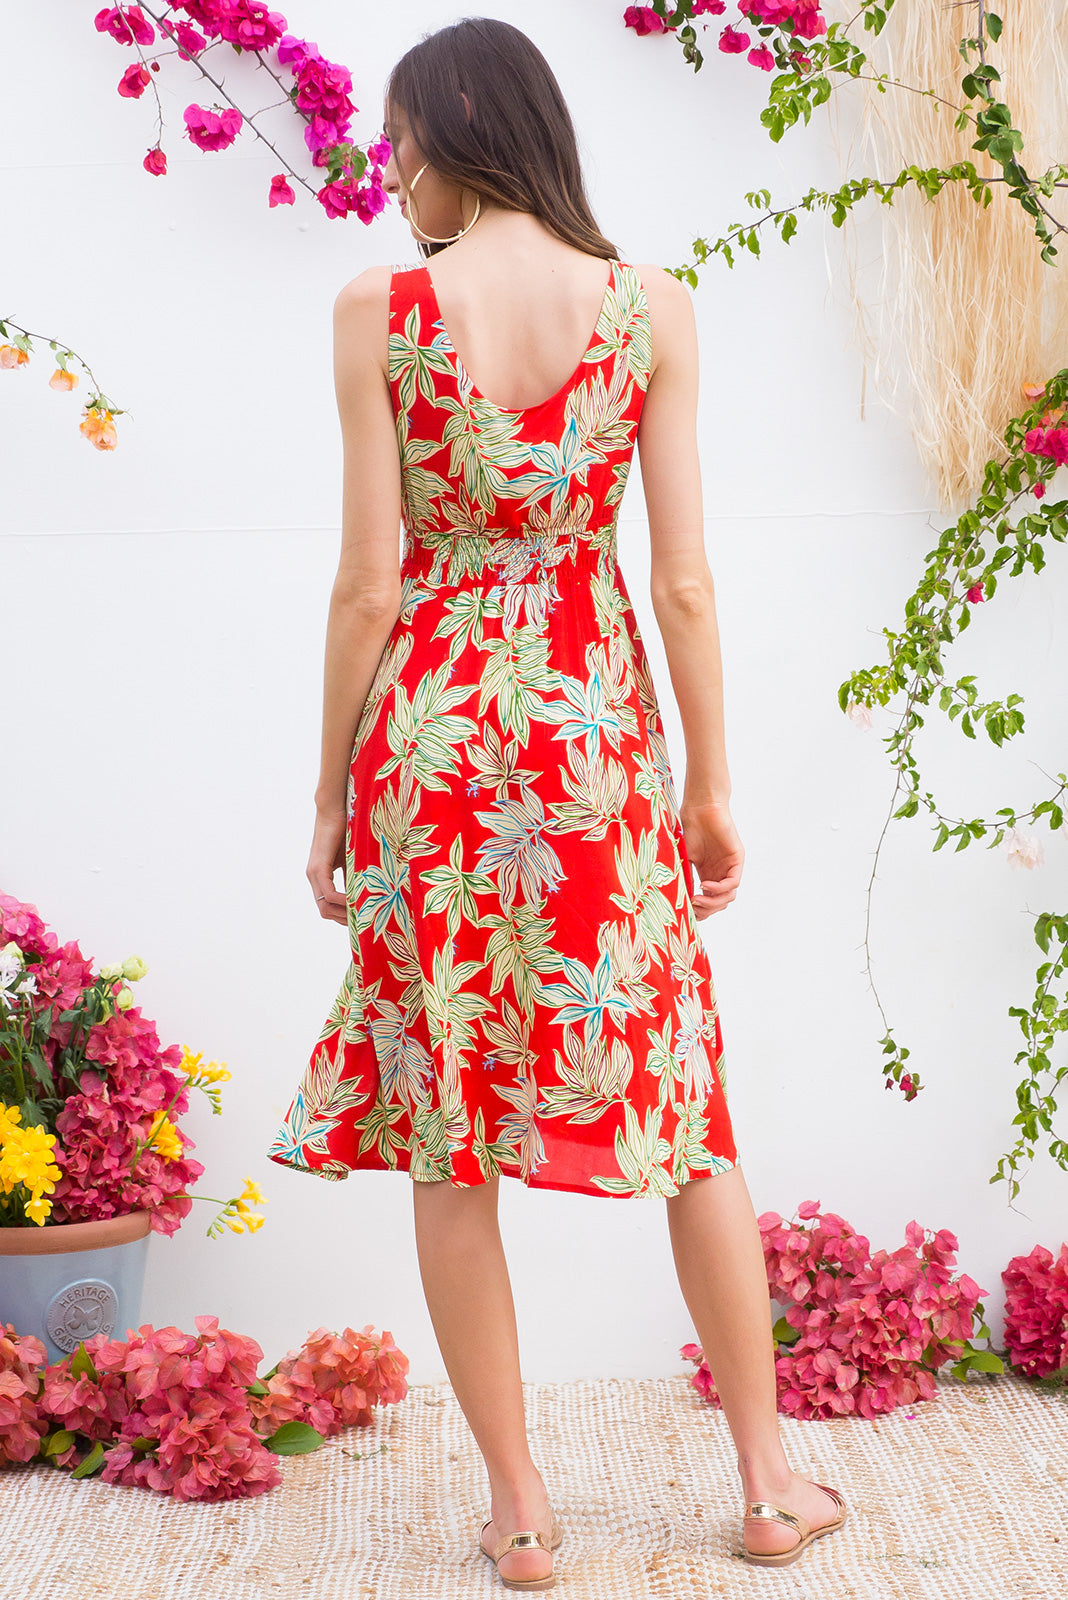 Sapphire Folio Red sleeves empire line sun dress with deep front pockets in a light weight woven rayon in a bright red, green and white jungle leaf print